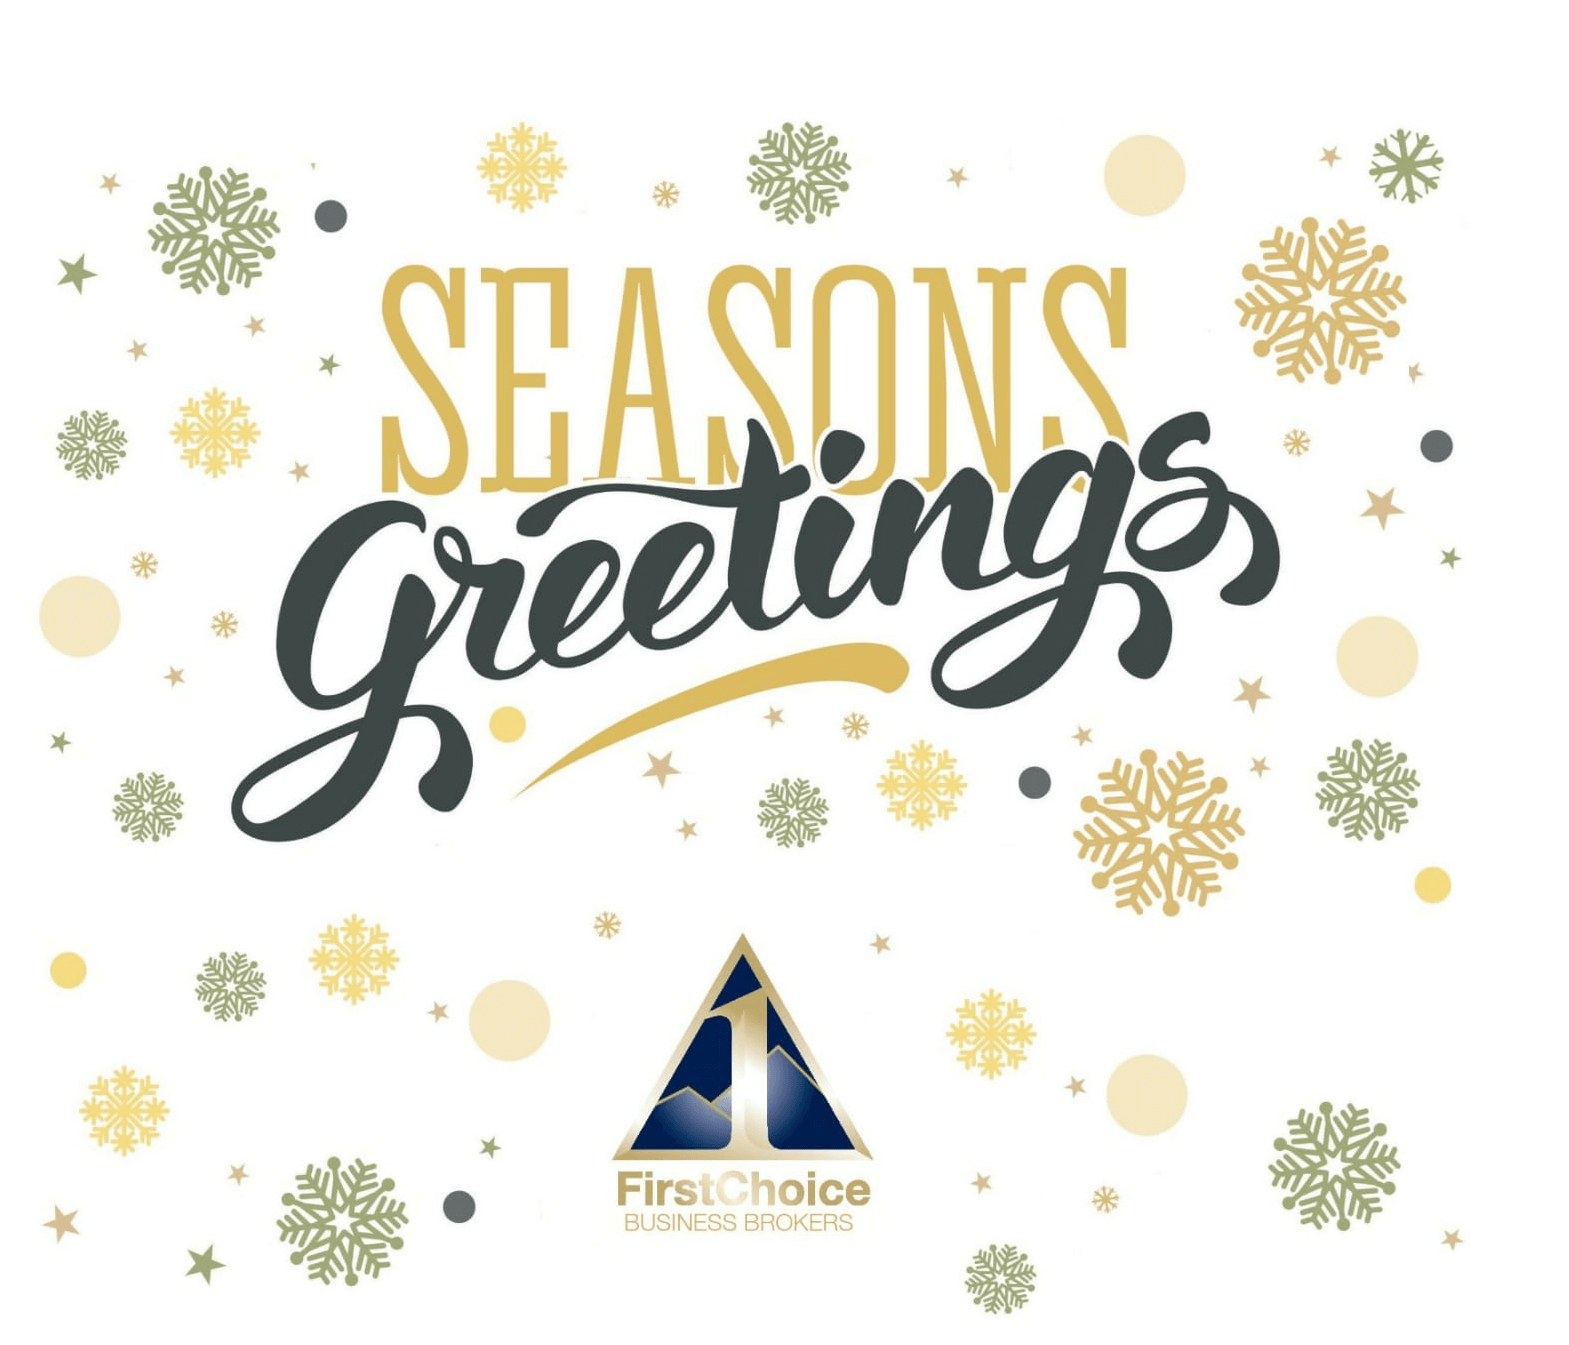 Seasons Greetings First Choice Business Brokers Pty Ltd